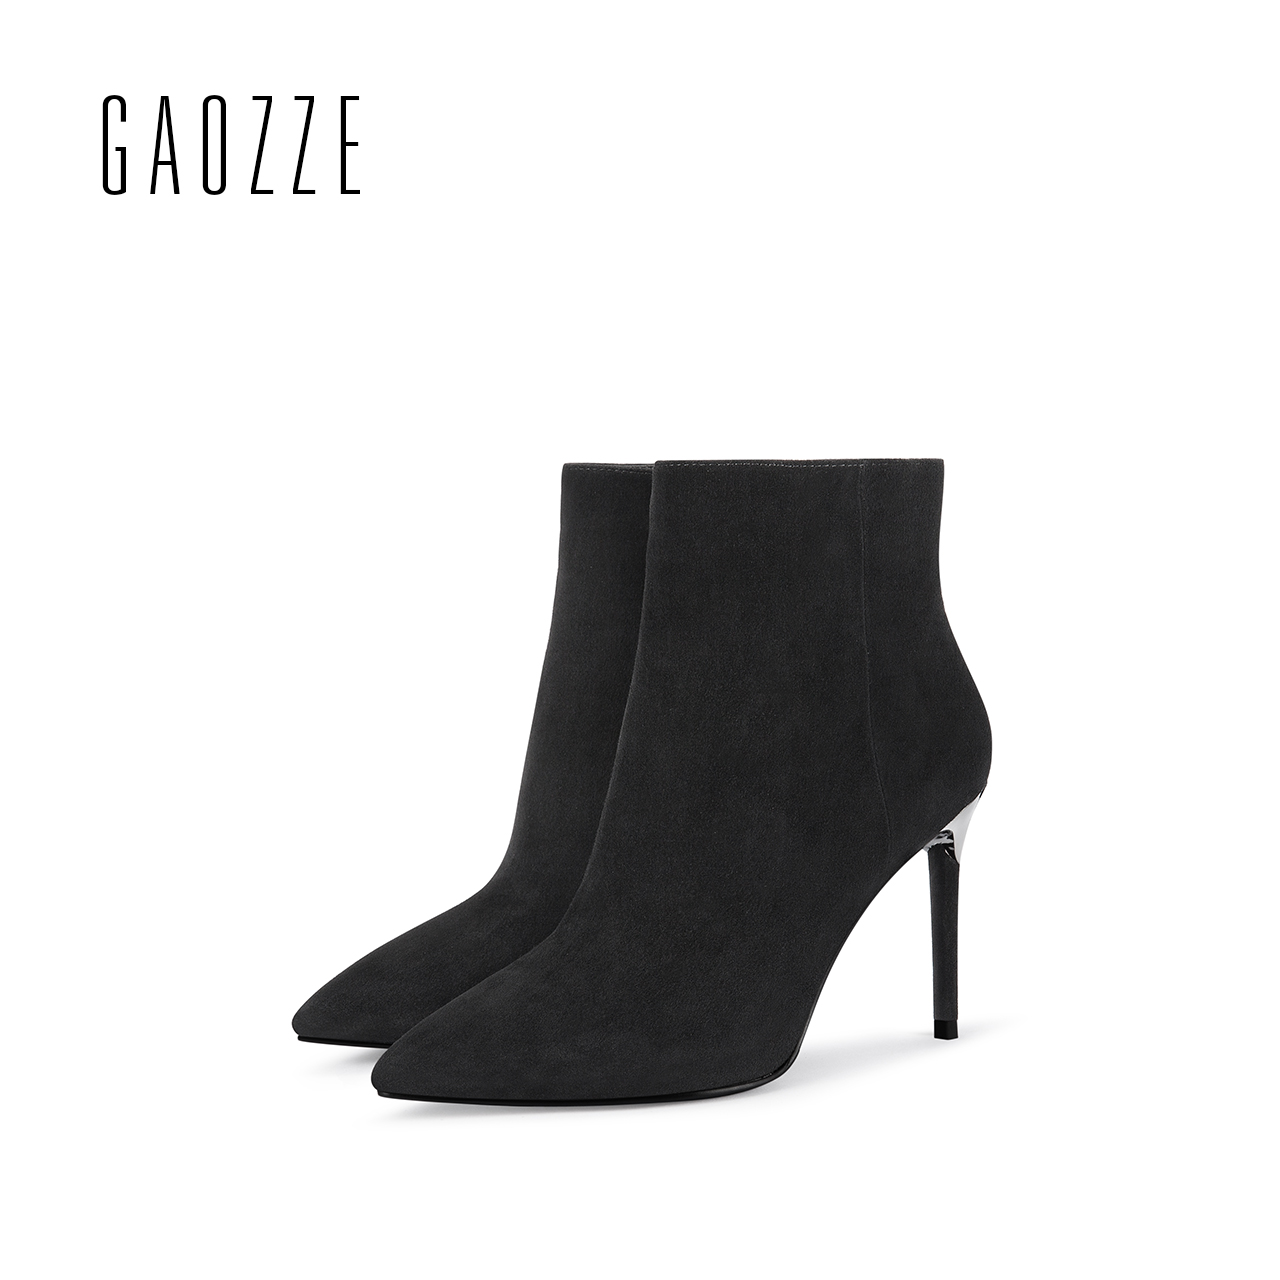 GAOZZE black sheep suede leather women ankle boots high heel pointed toe shoes female side zipper ankle boots 2017 autumn new стоимость